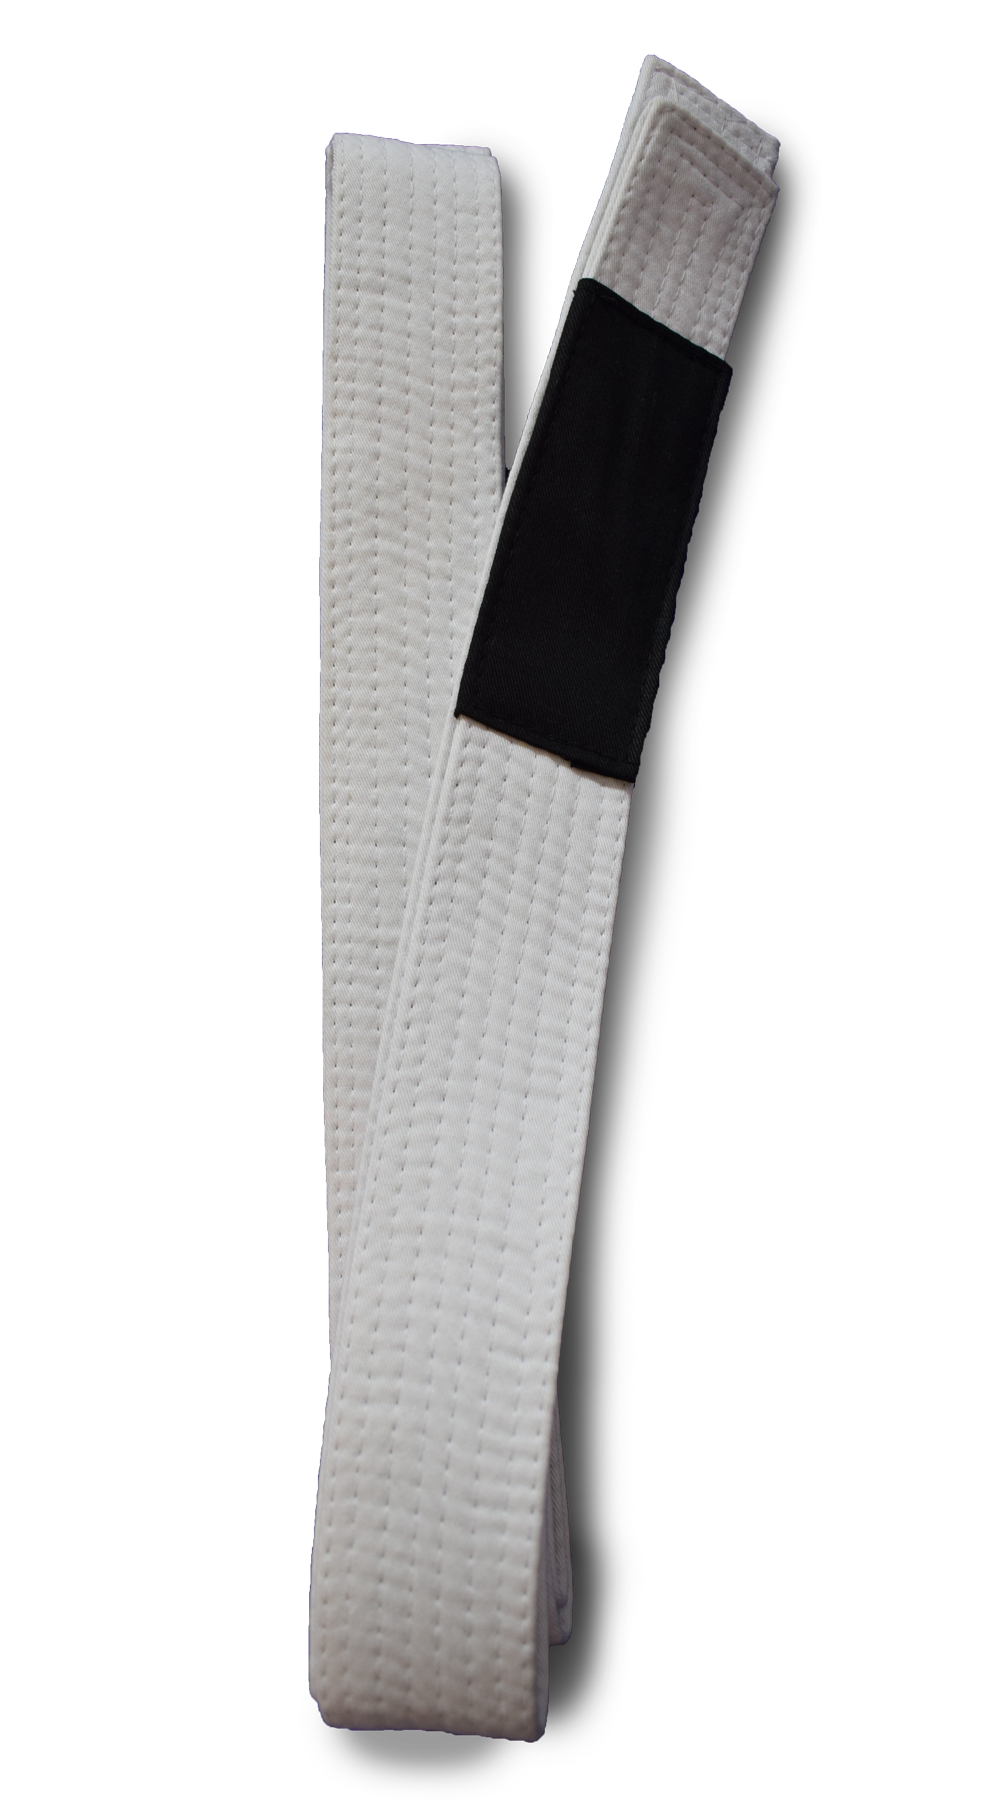 Buy Brazilian Jiu-Jitsu Belts in NZ New Zealand.